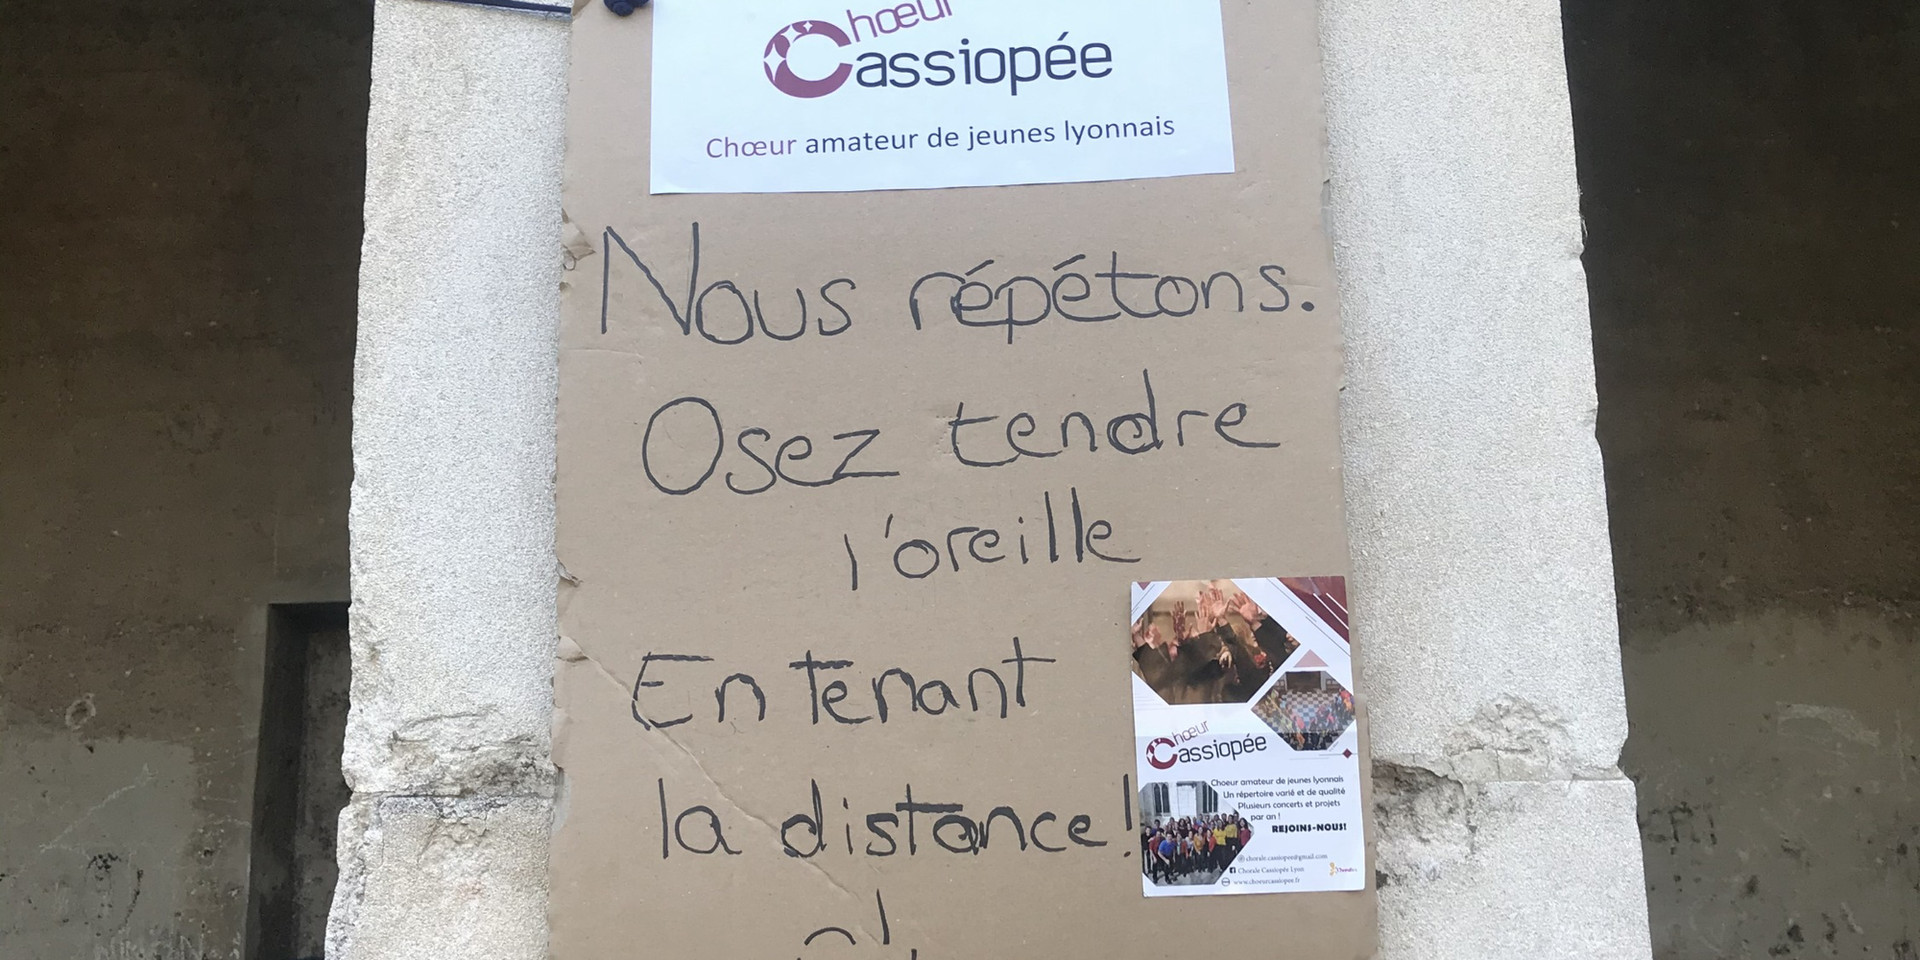 Choeur Cassiopee